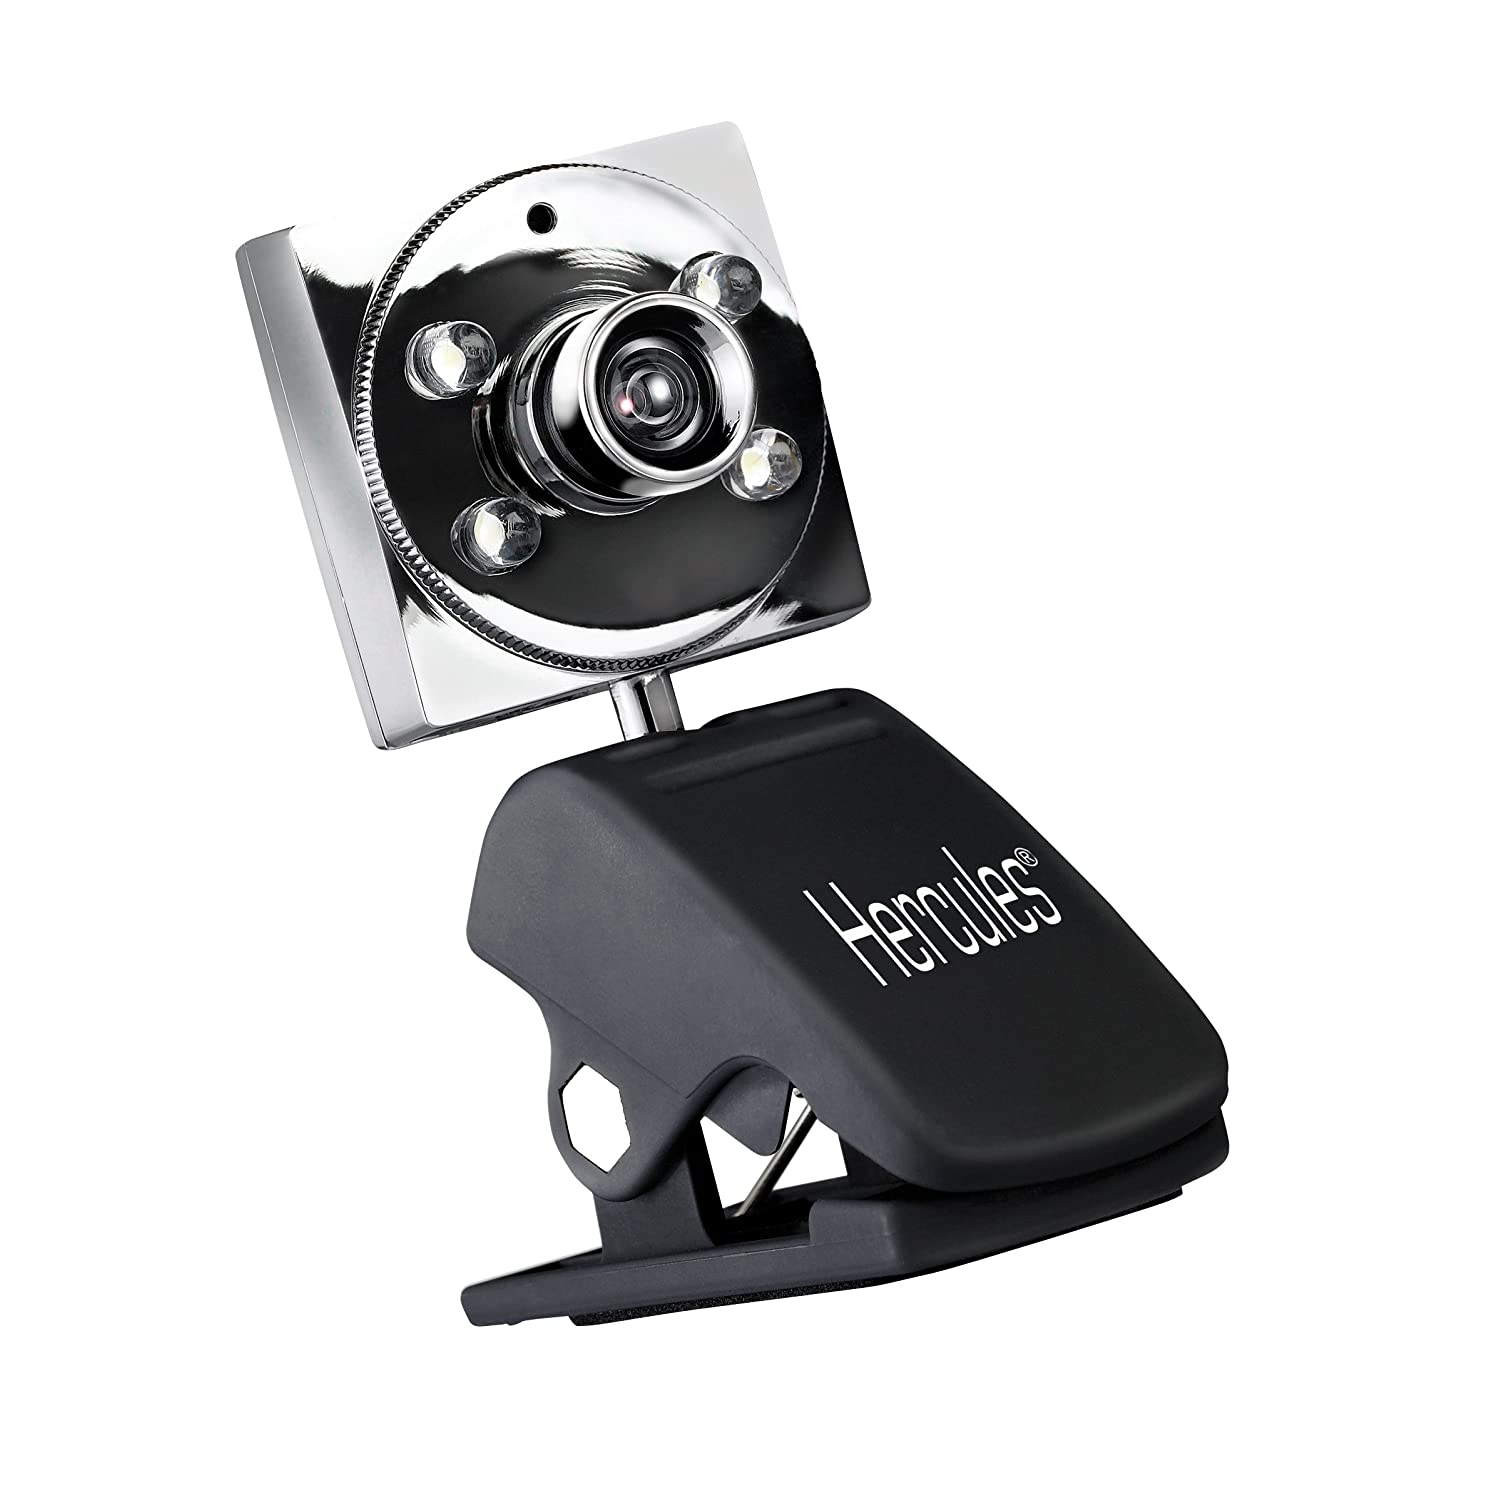 Hercules Deluxe Optical Glass Webcam